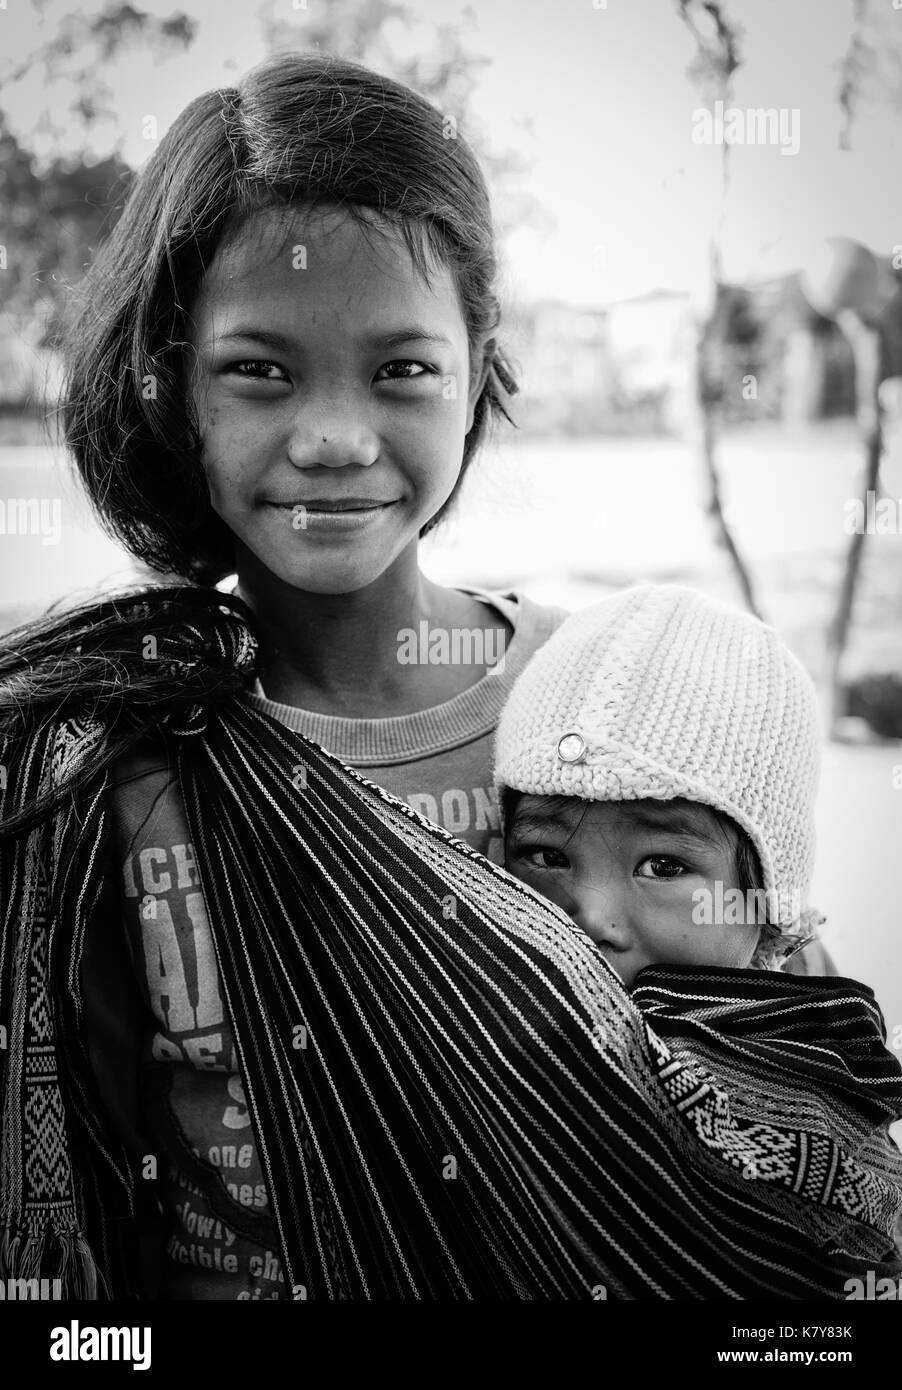 Dalat, Vietnam  - Dec 5, 2015. Portrait of Koho children in Dalat, Vietnam. Koho are an ethnic group living in the Dalat township of Central Highlands - Stock Image